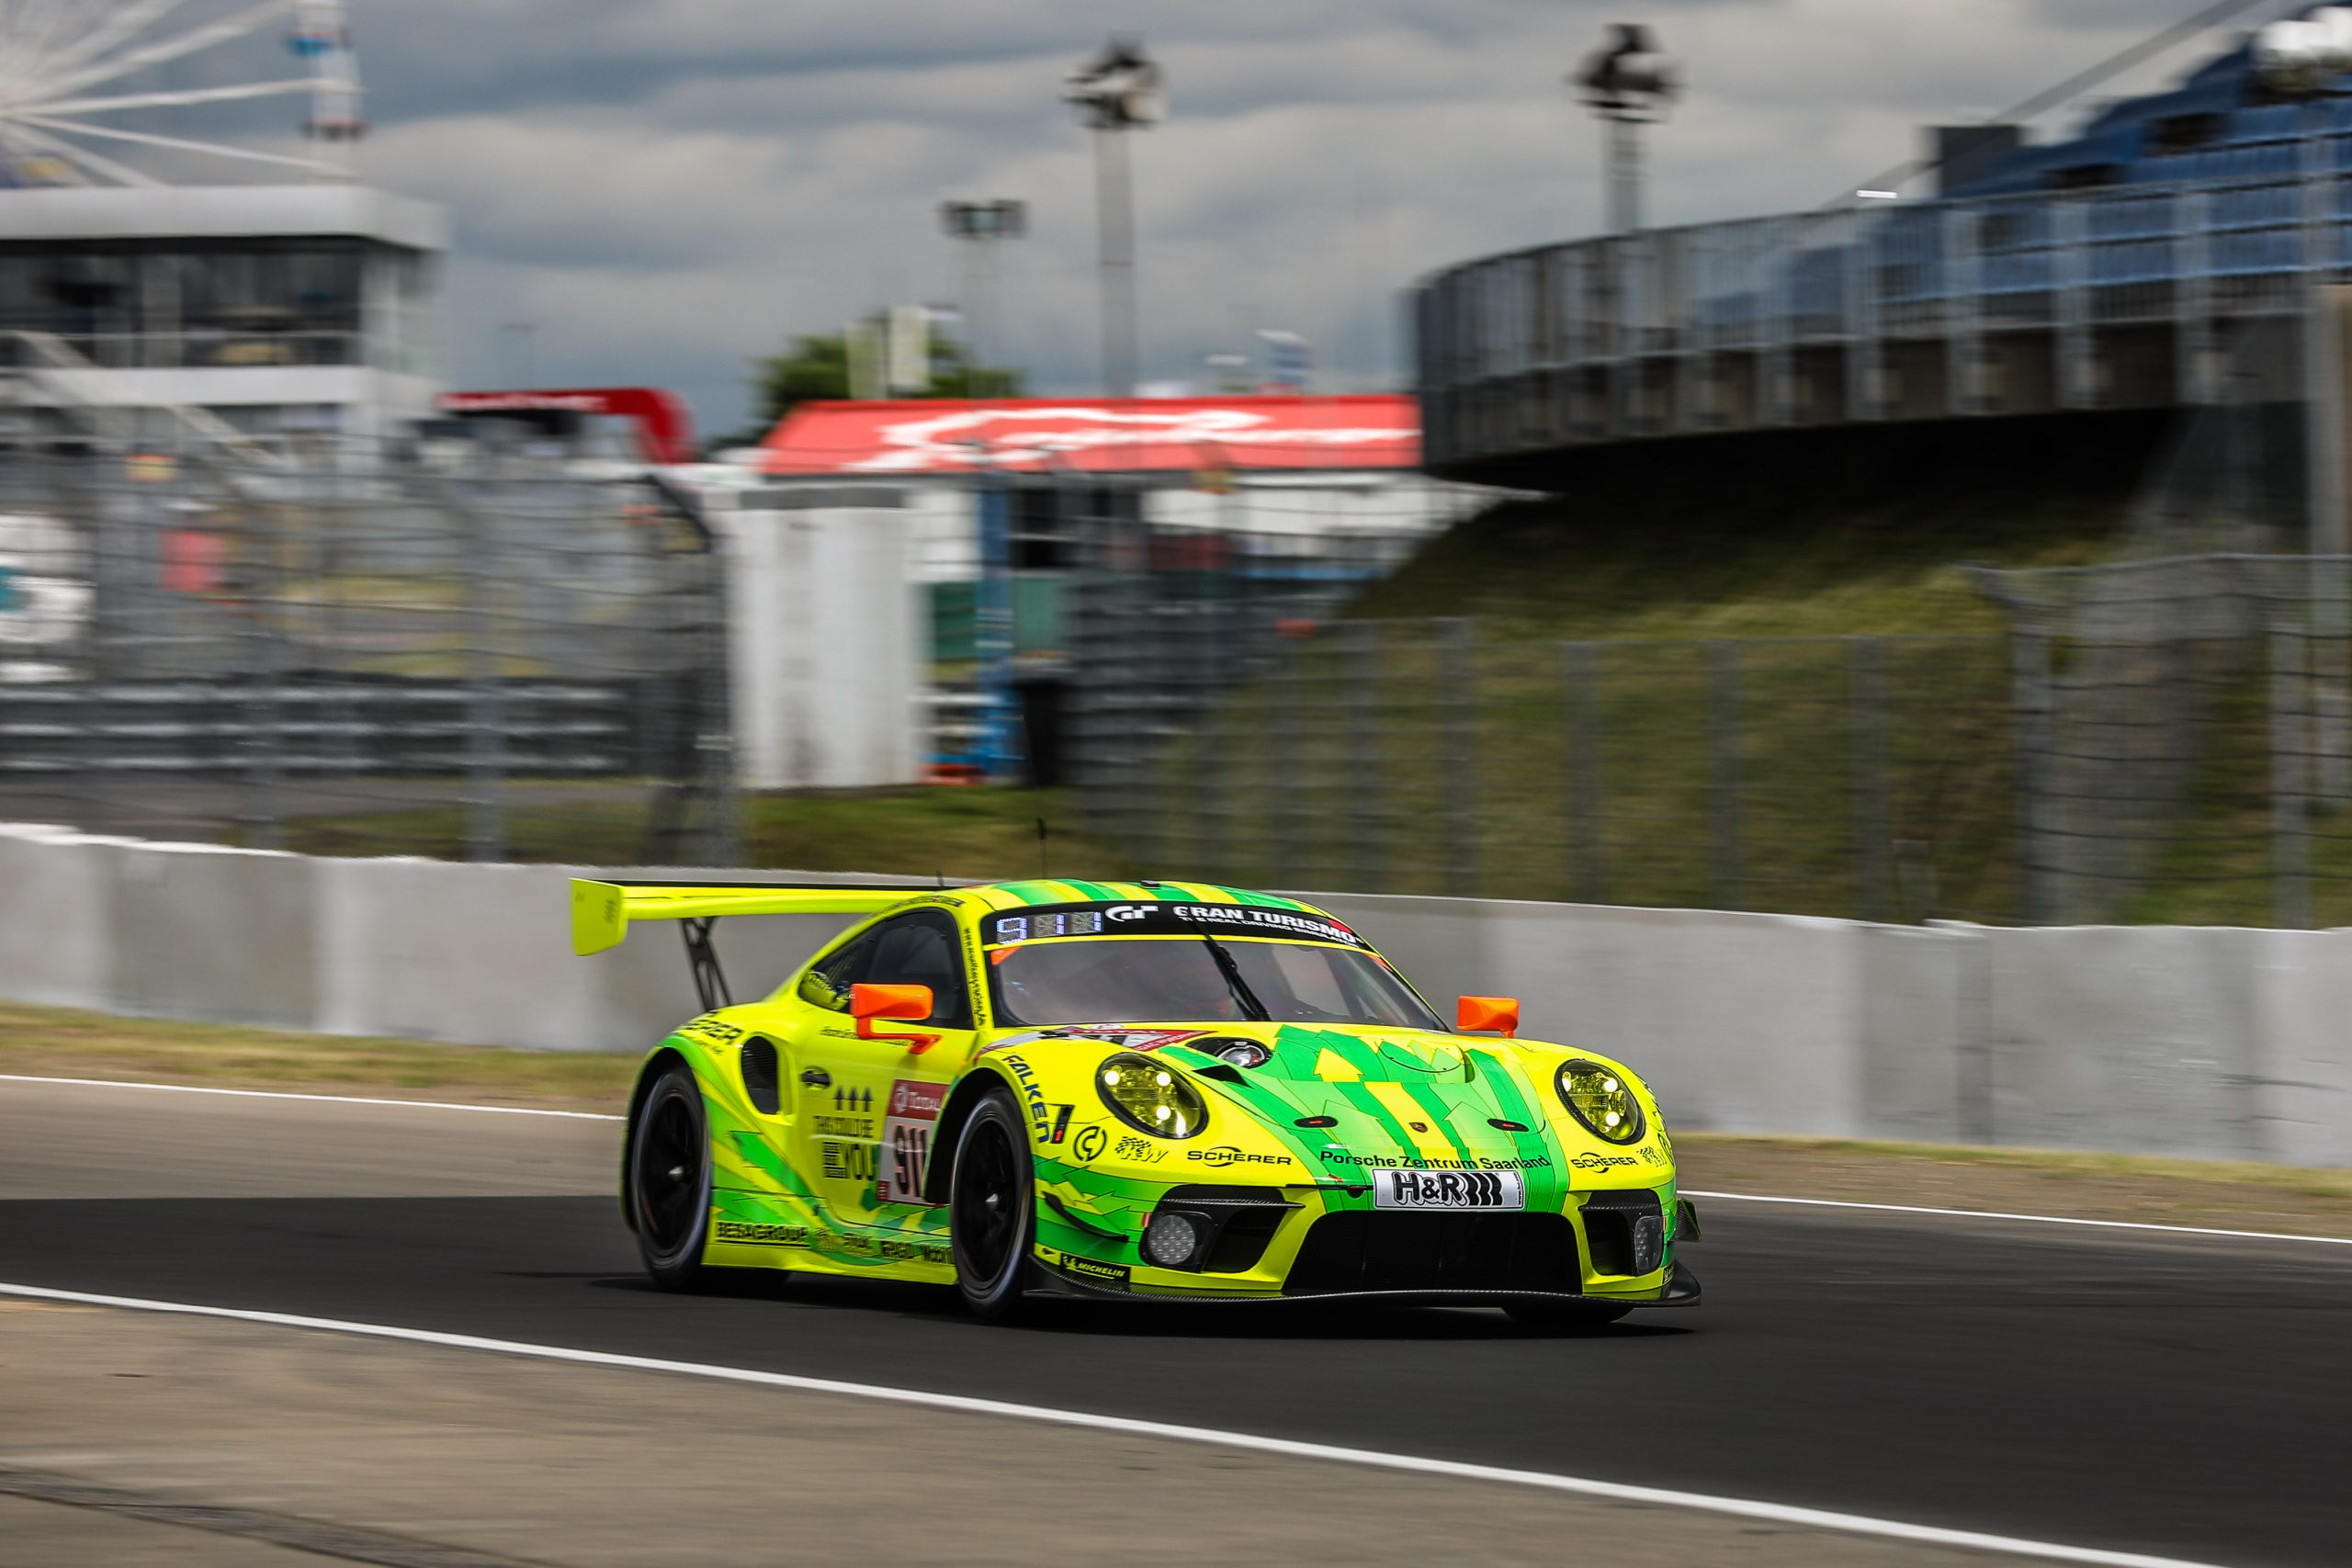 Manthey Porsche #911 the quickest in qualifying session two